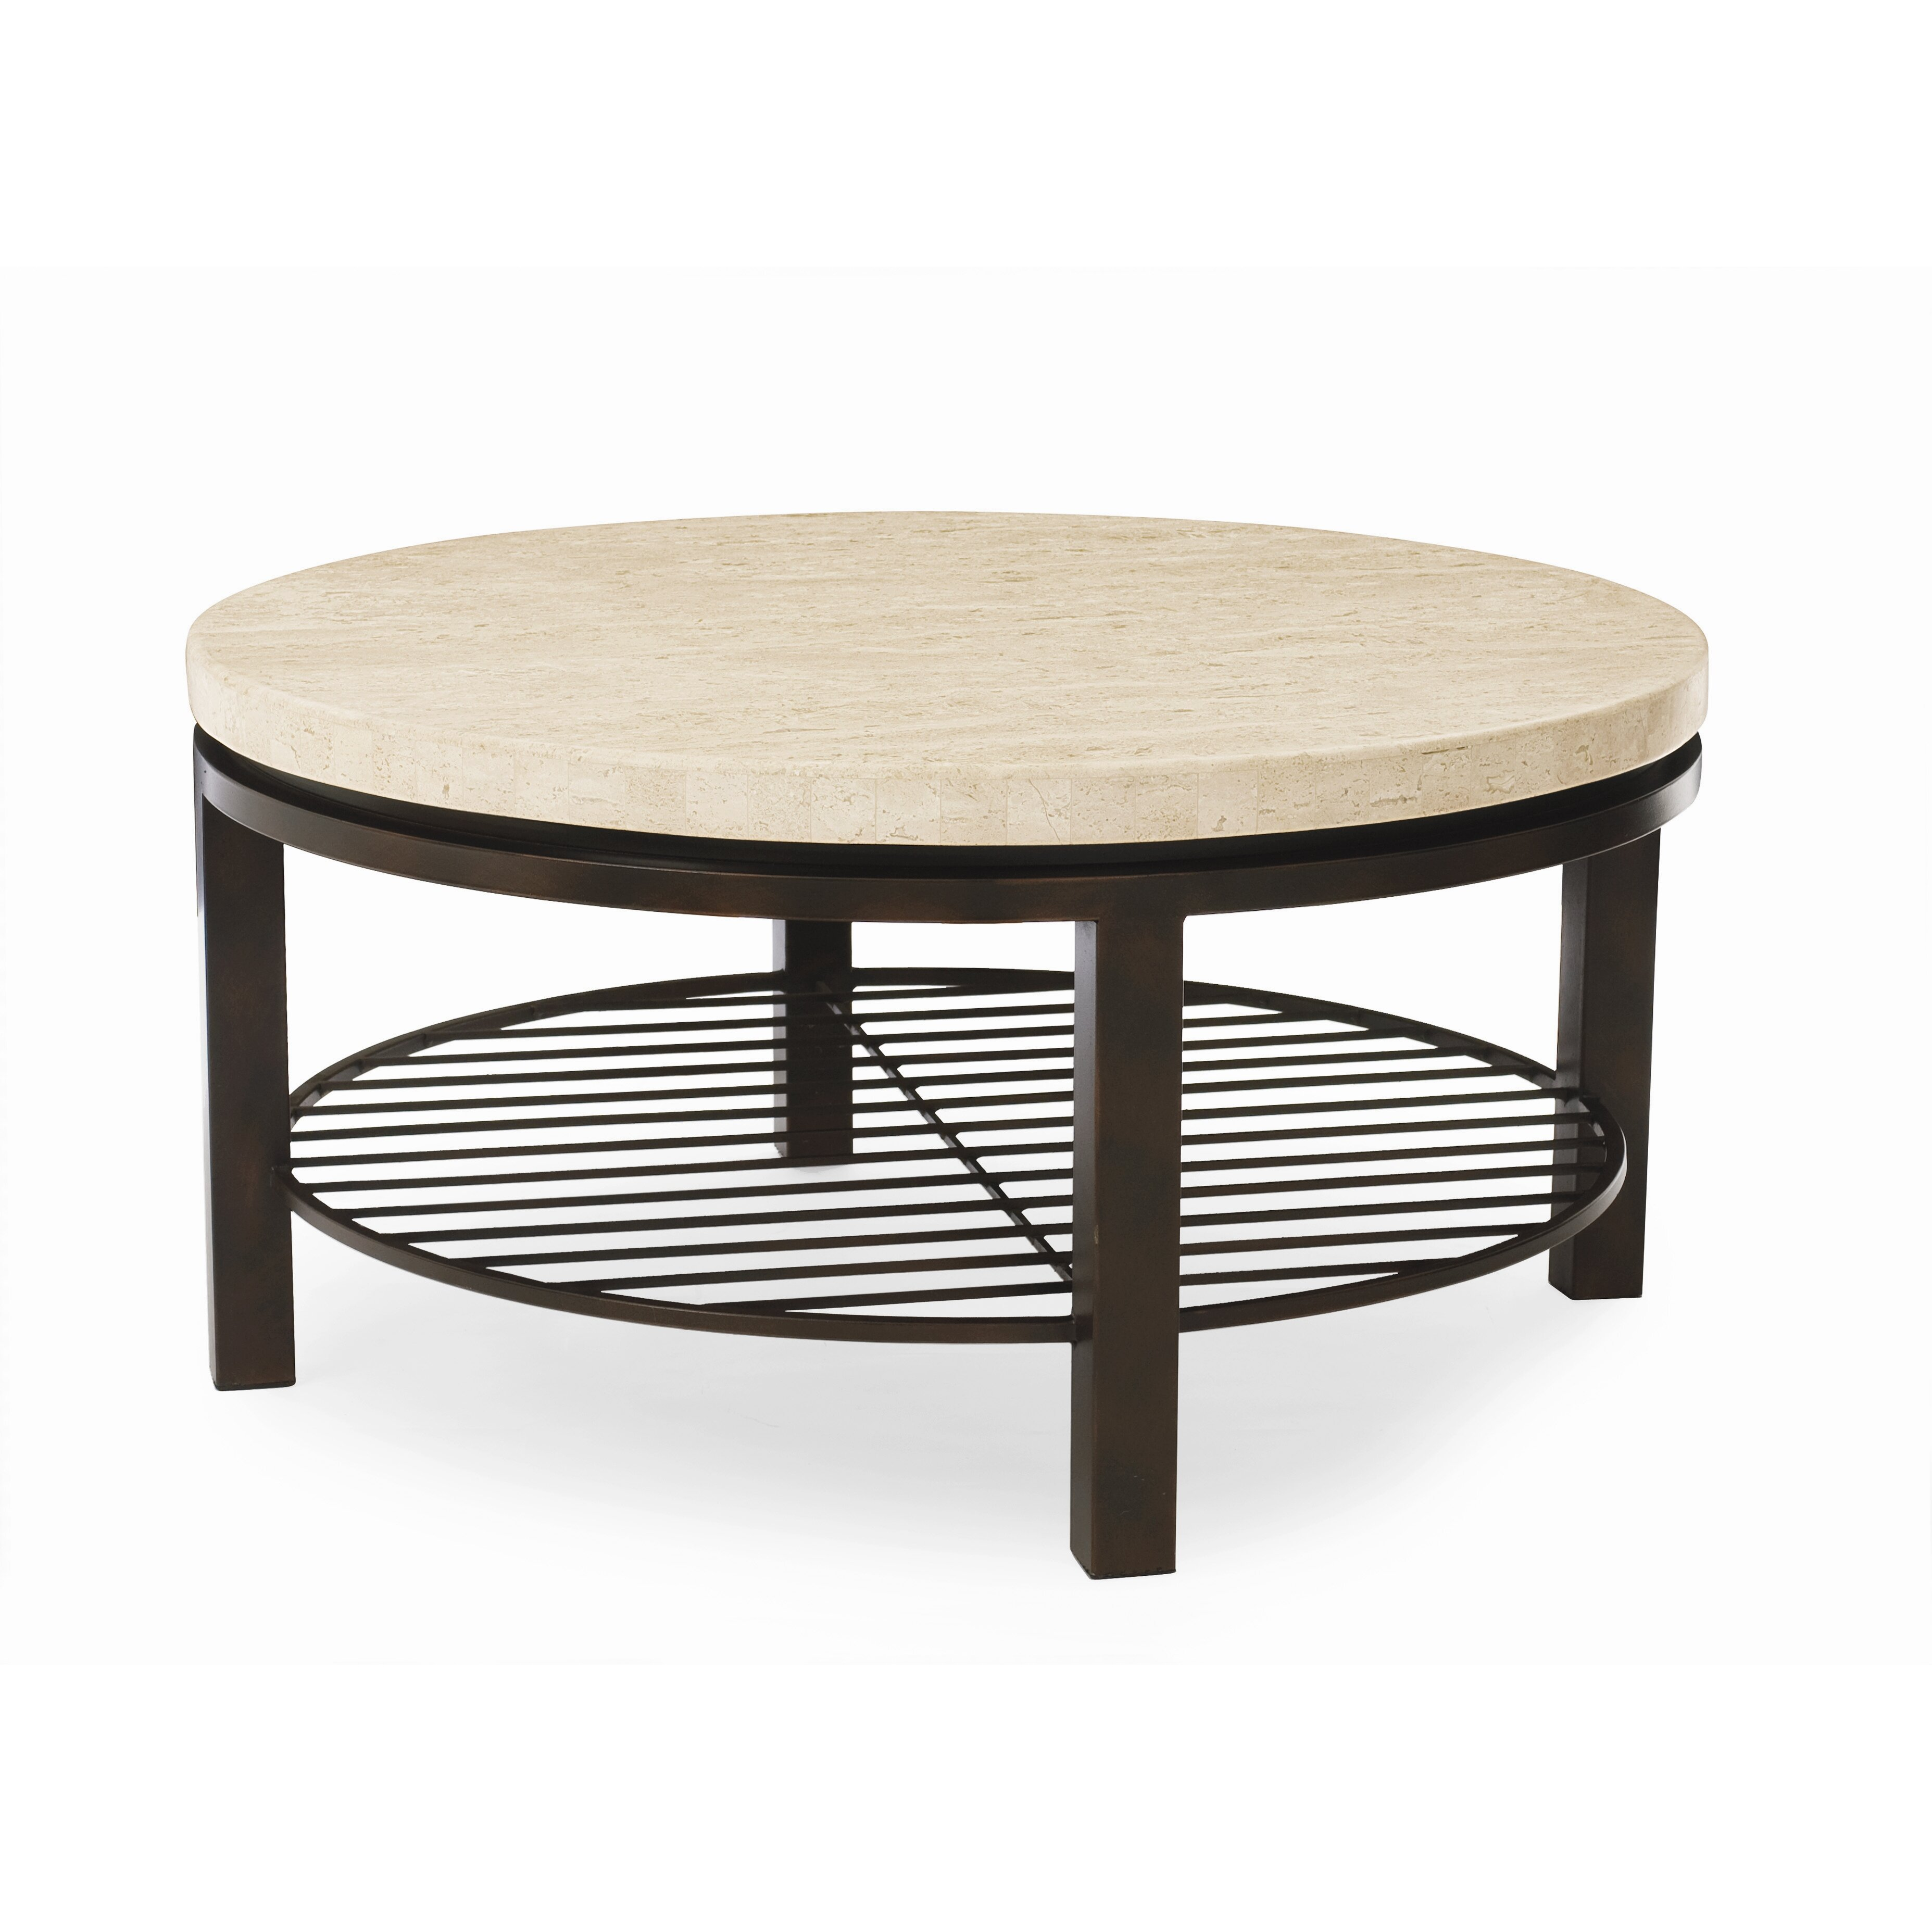 Bernhardt tempo coffee table reviews wayfair Bernhardt coffee tables